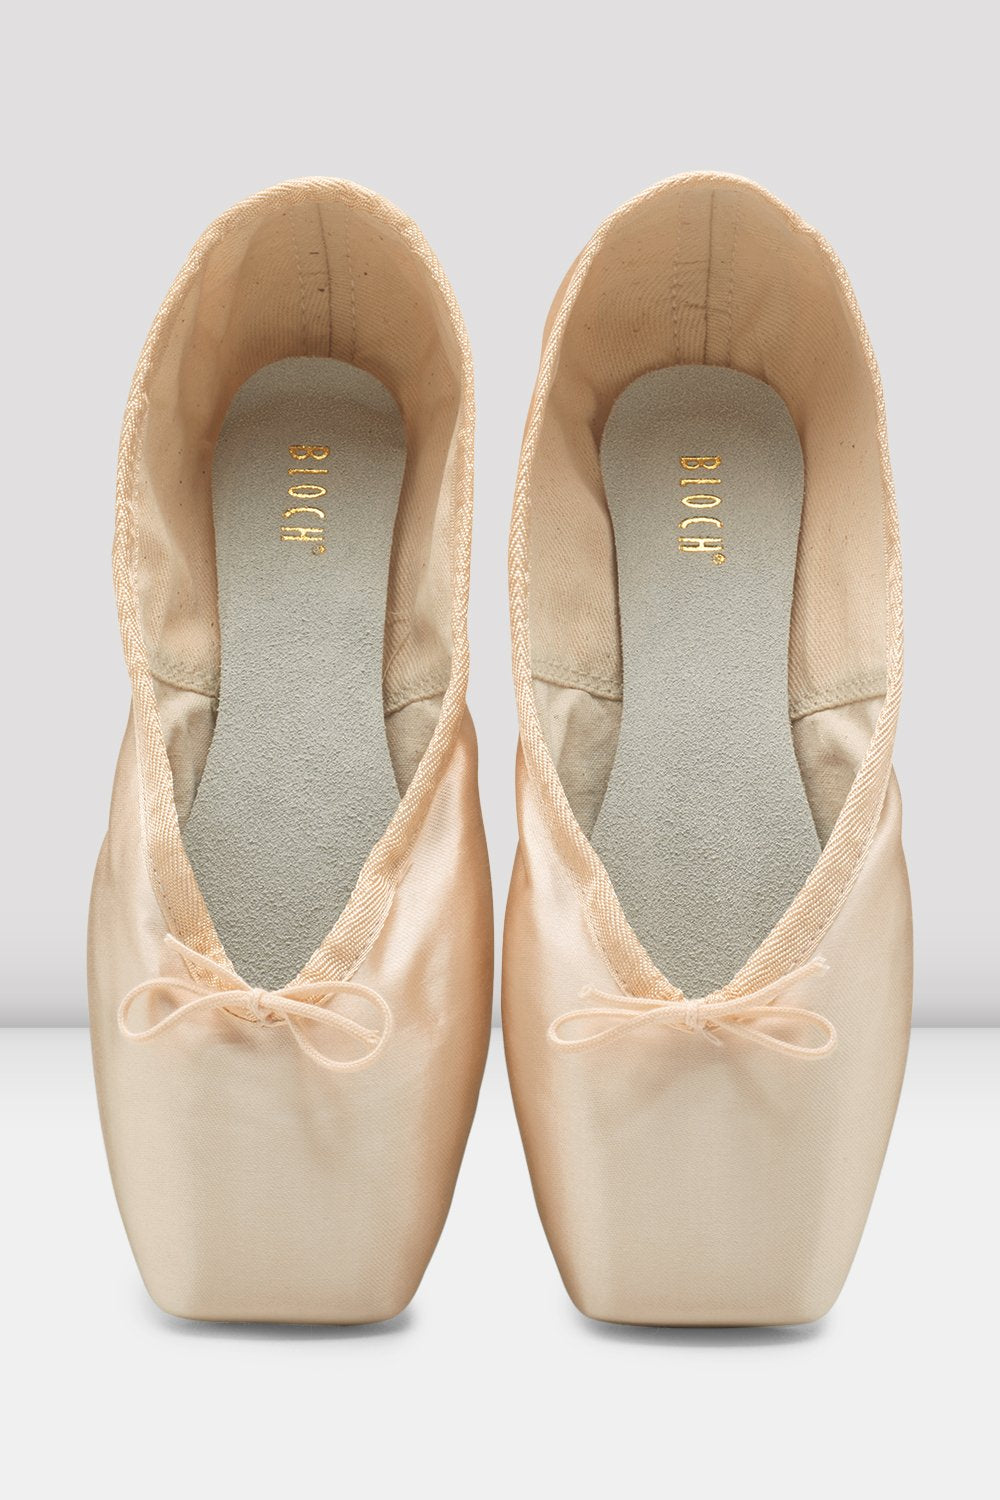 Pink Satin Bloch Heritage Pointe Shoes pair of shoes en pointe in parallel position